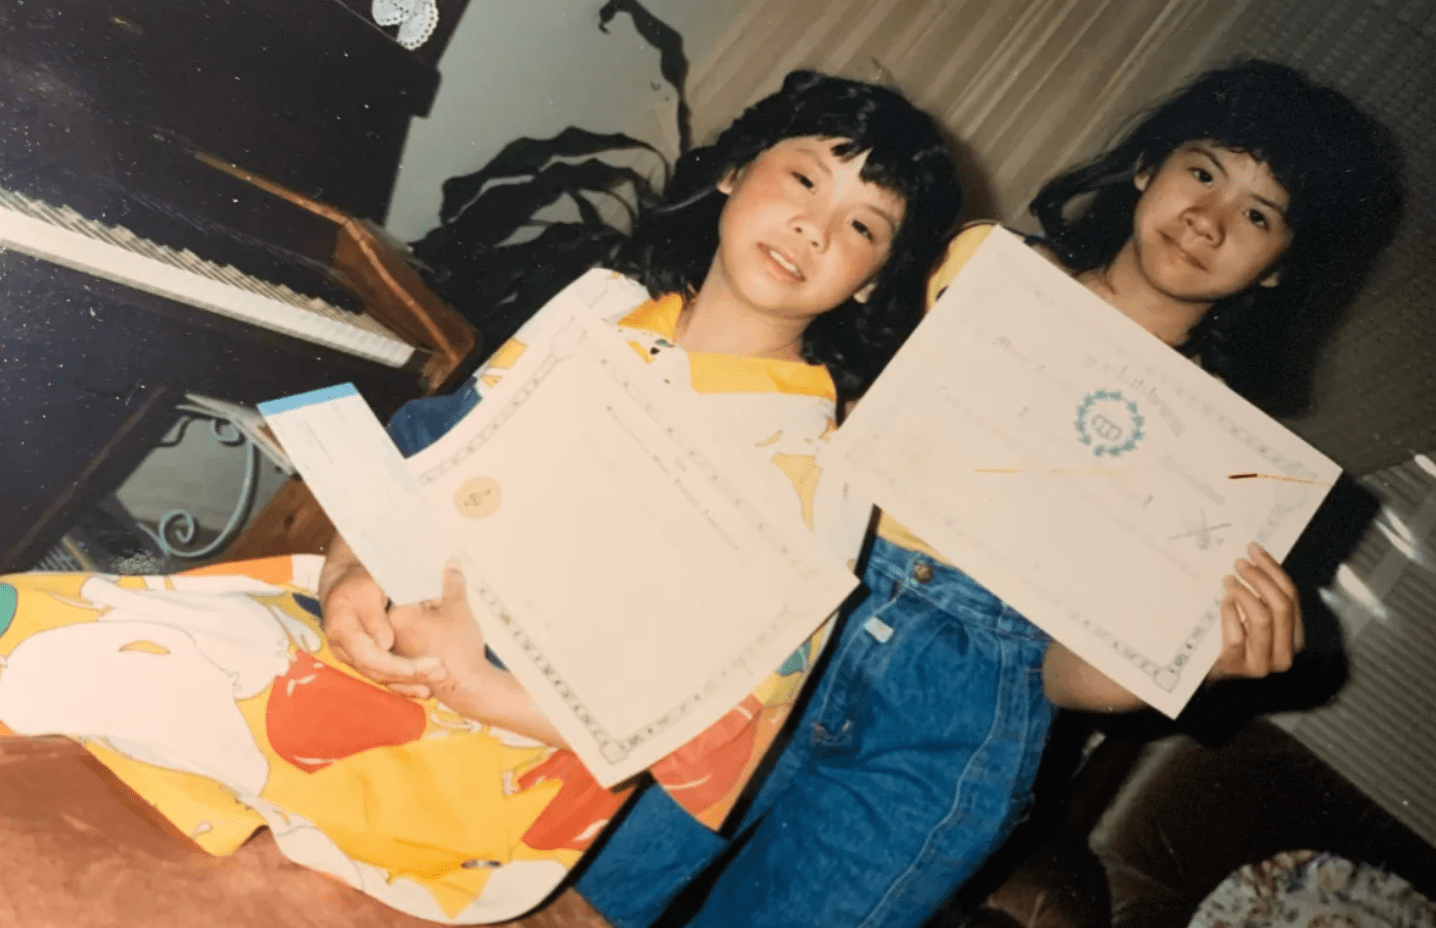 Florence Hwang as a youth